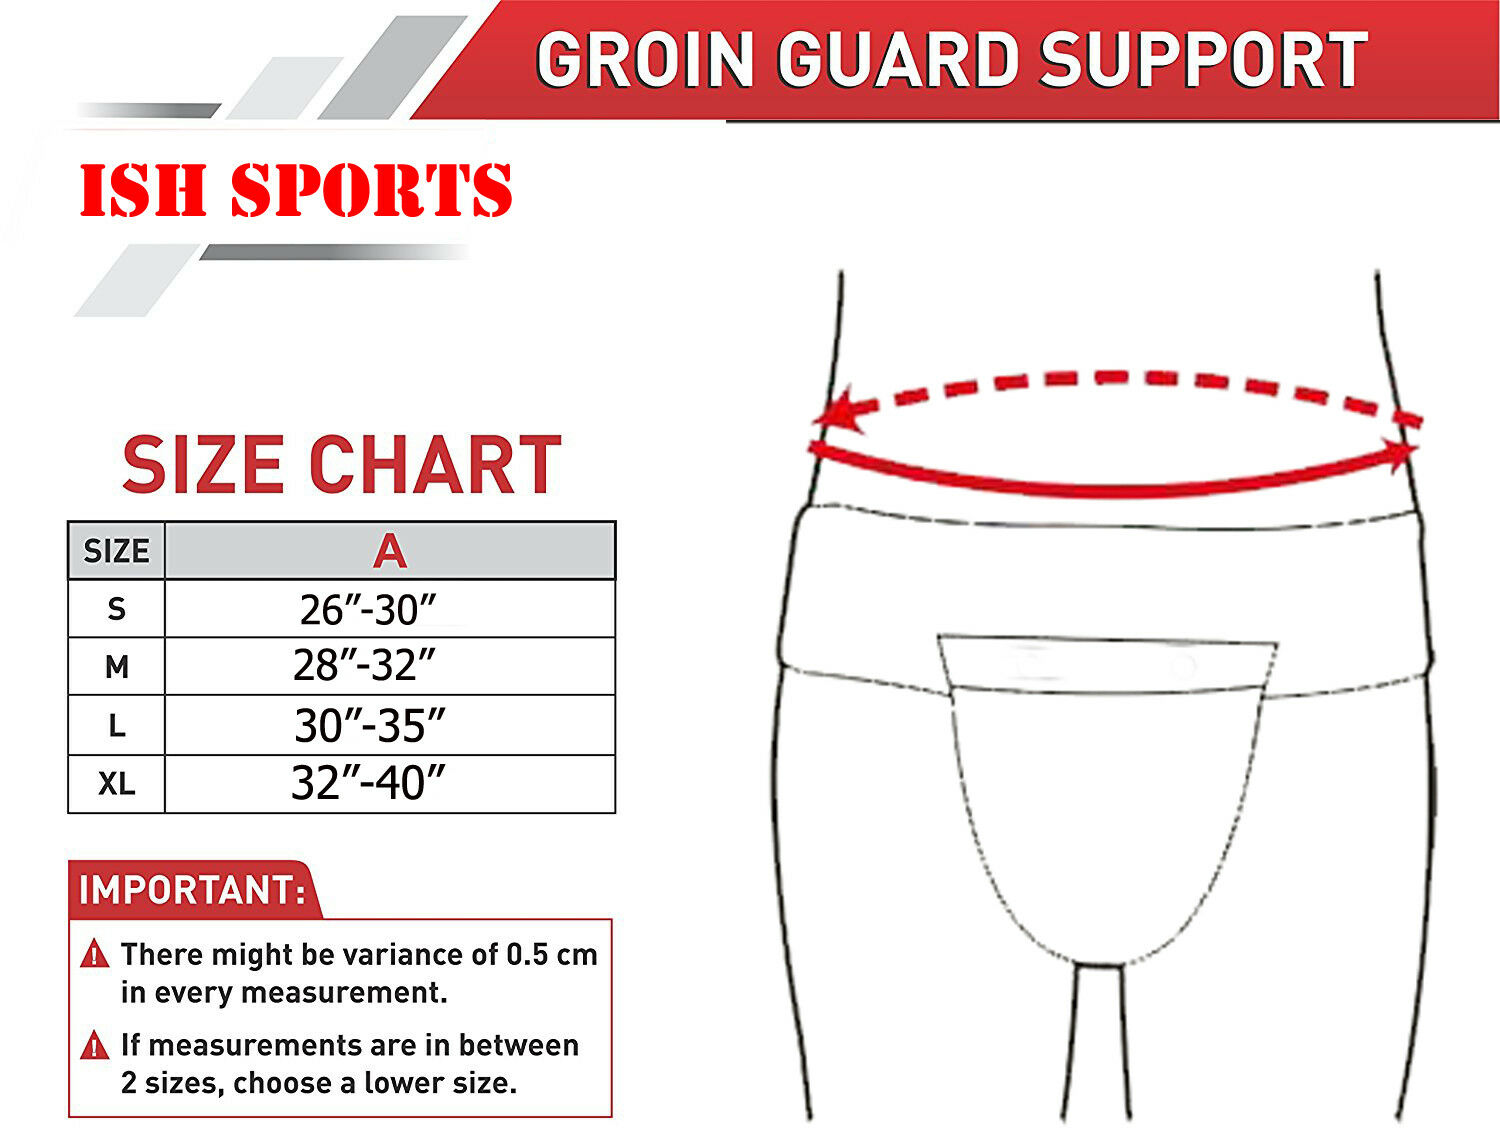 Boxing MMA Karate Muay Thai UFC Groin Guards Protector Cup Inside Safety Sports